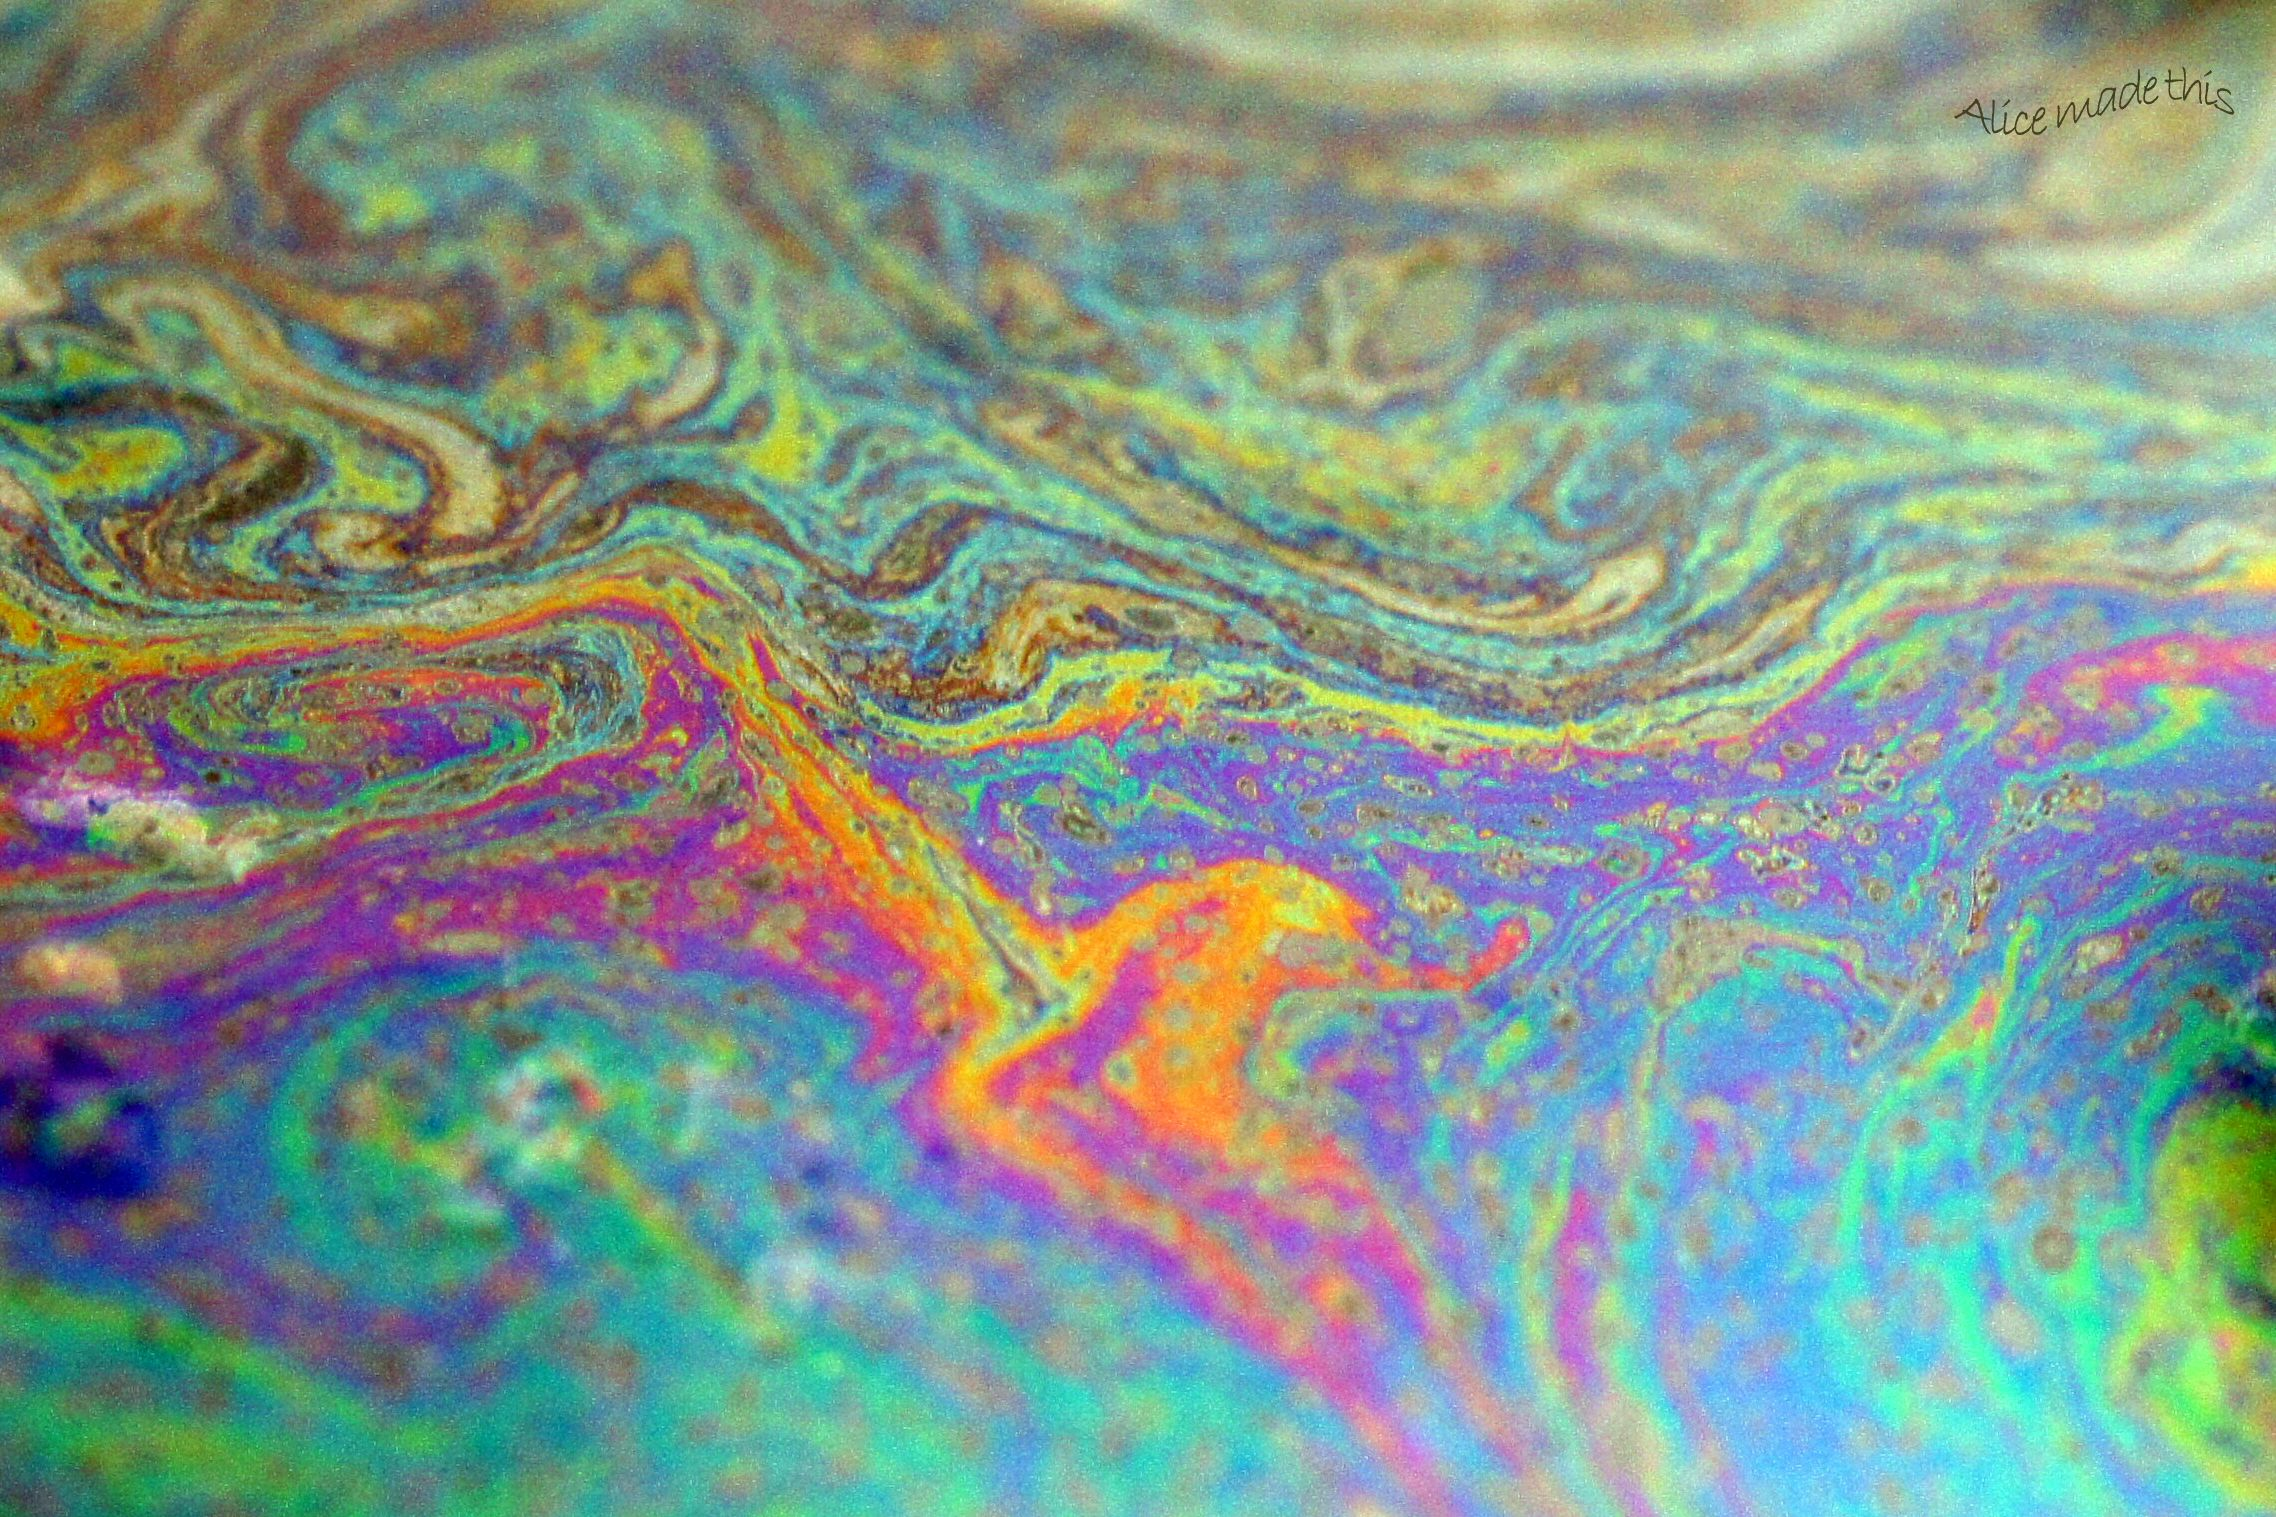 Oil in water photo